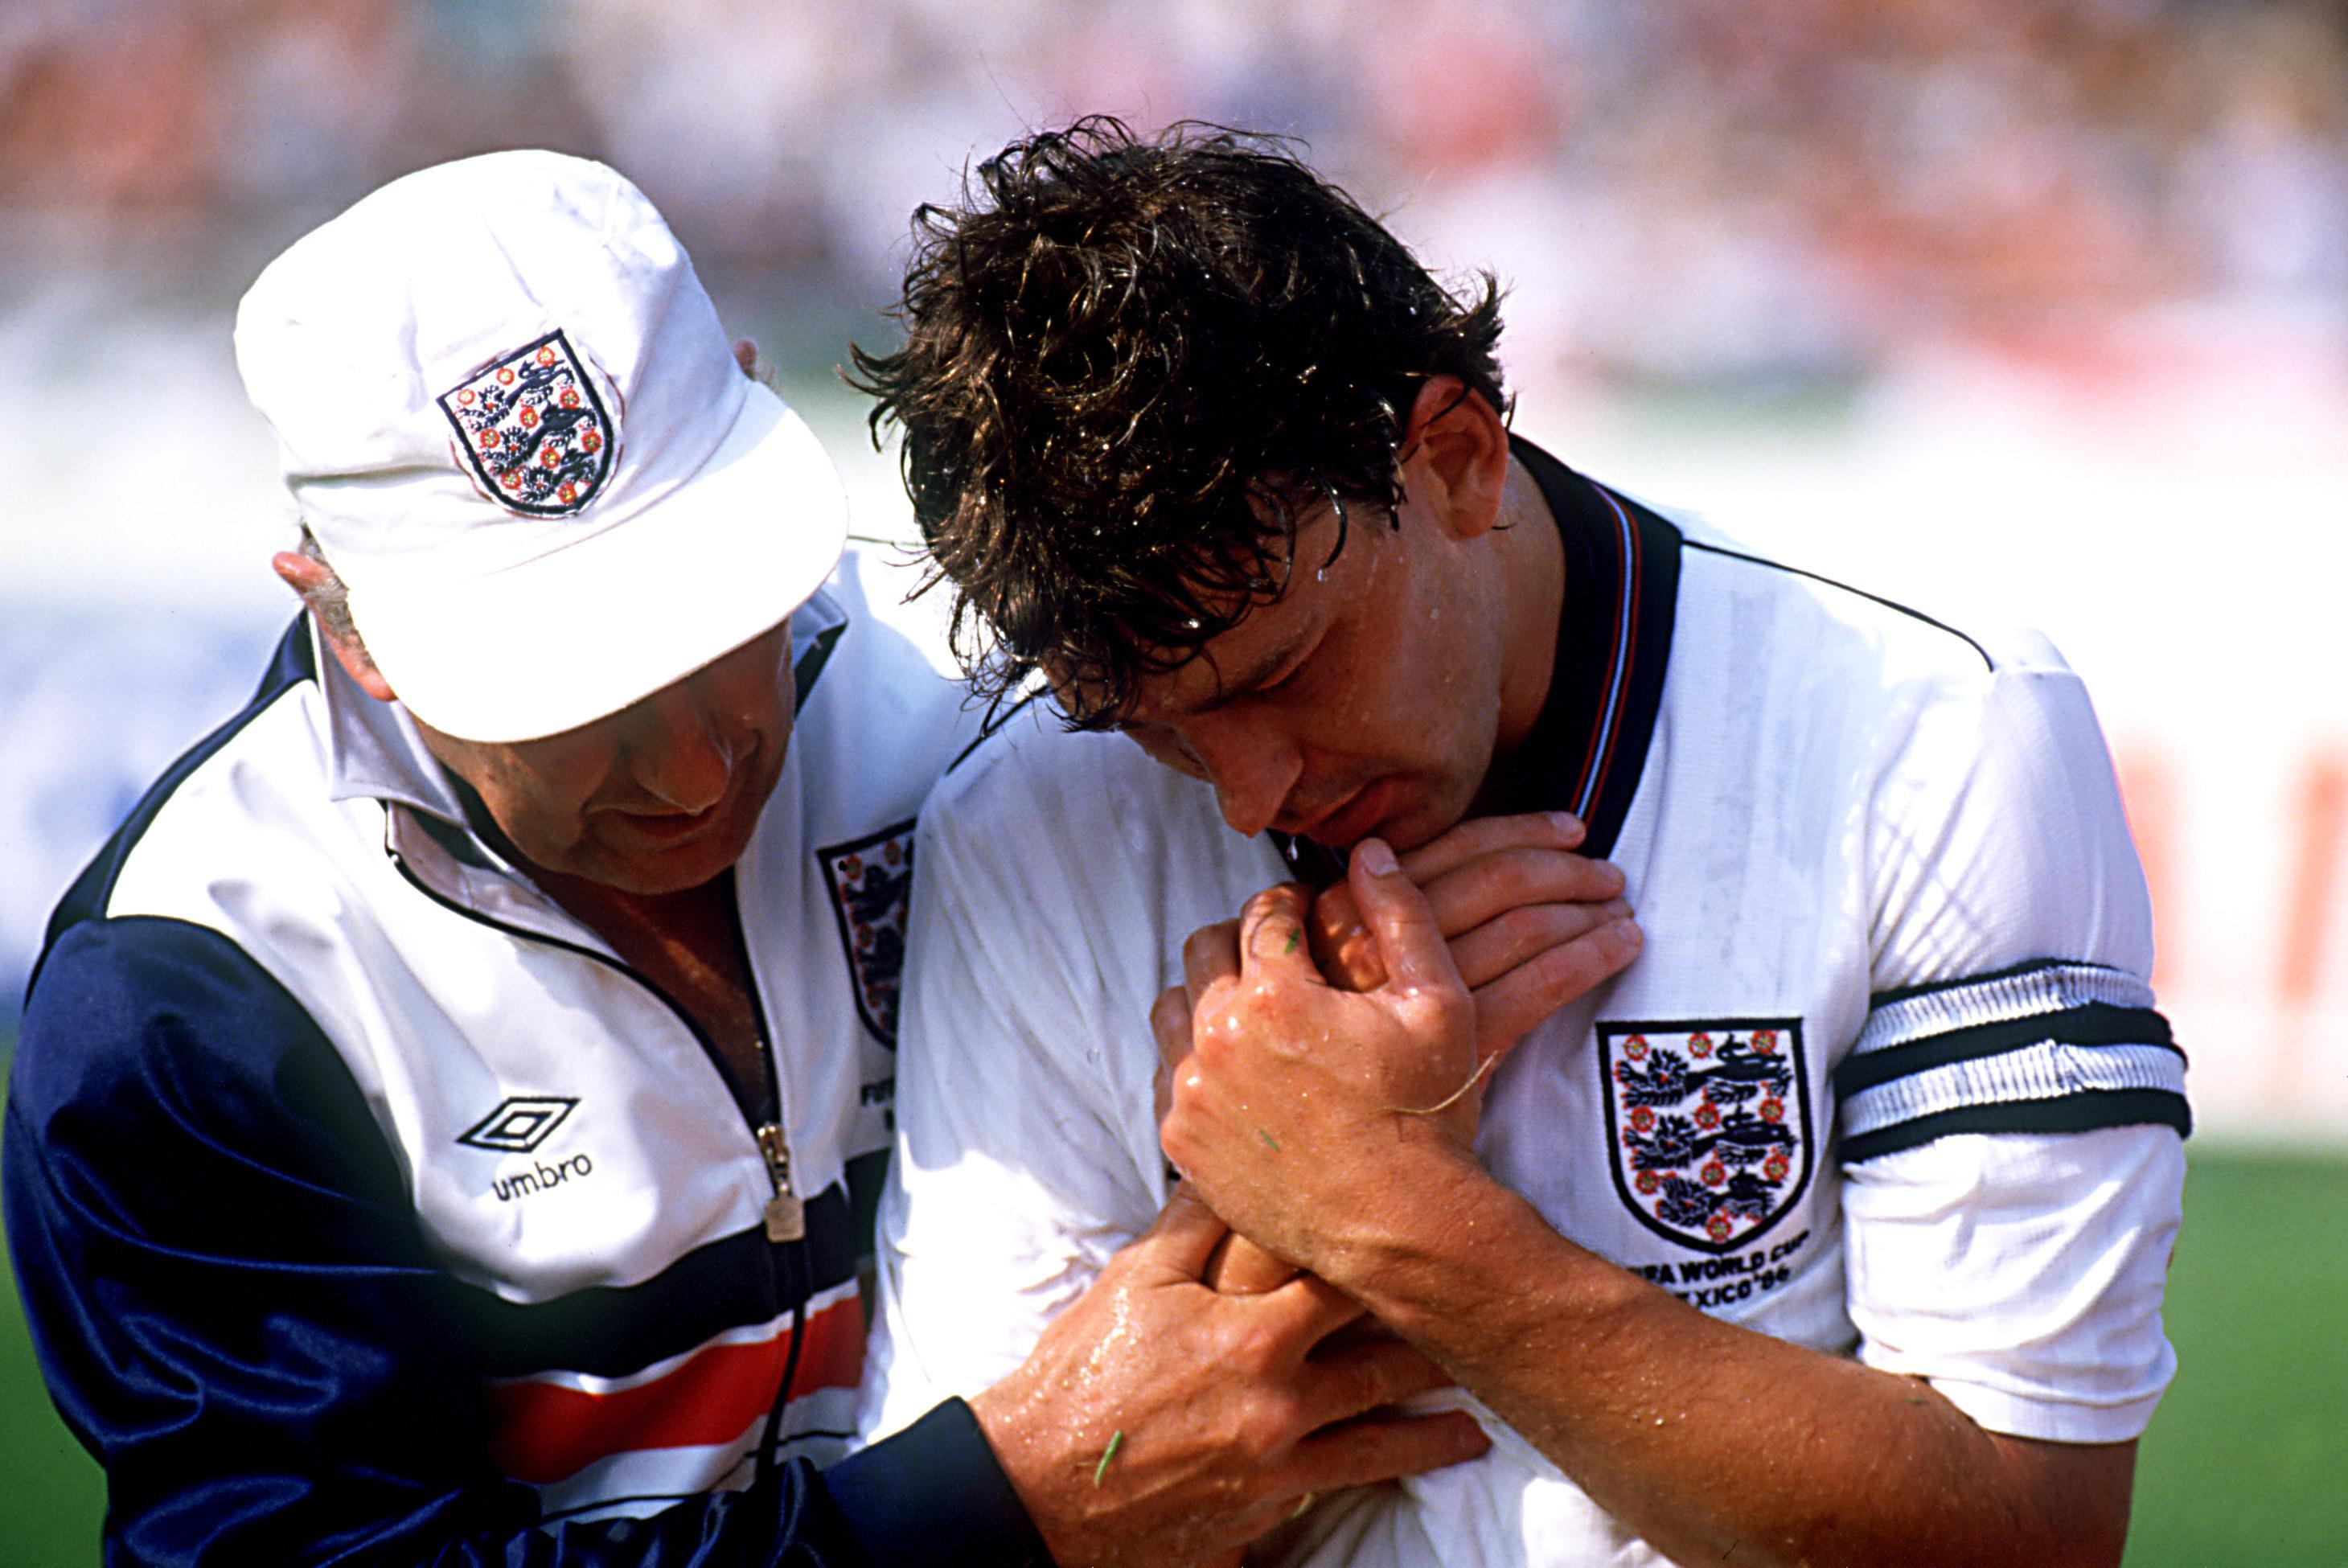 Bryan Robson: The World Cup's Unluckiest Englishmen